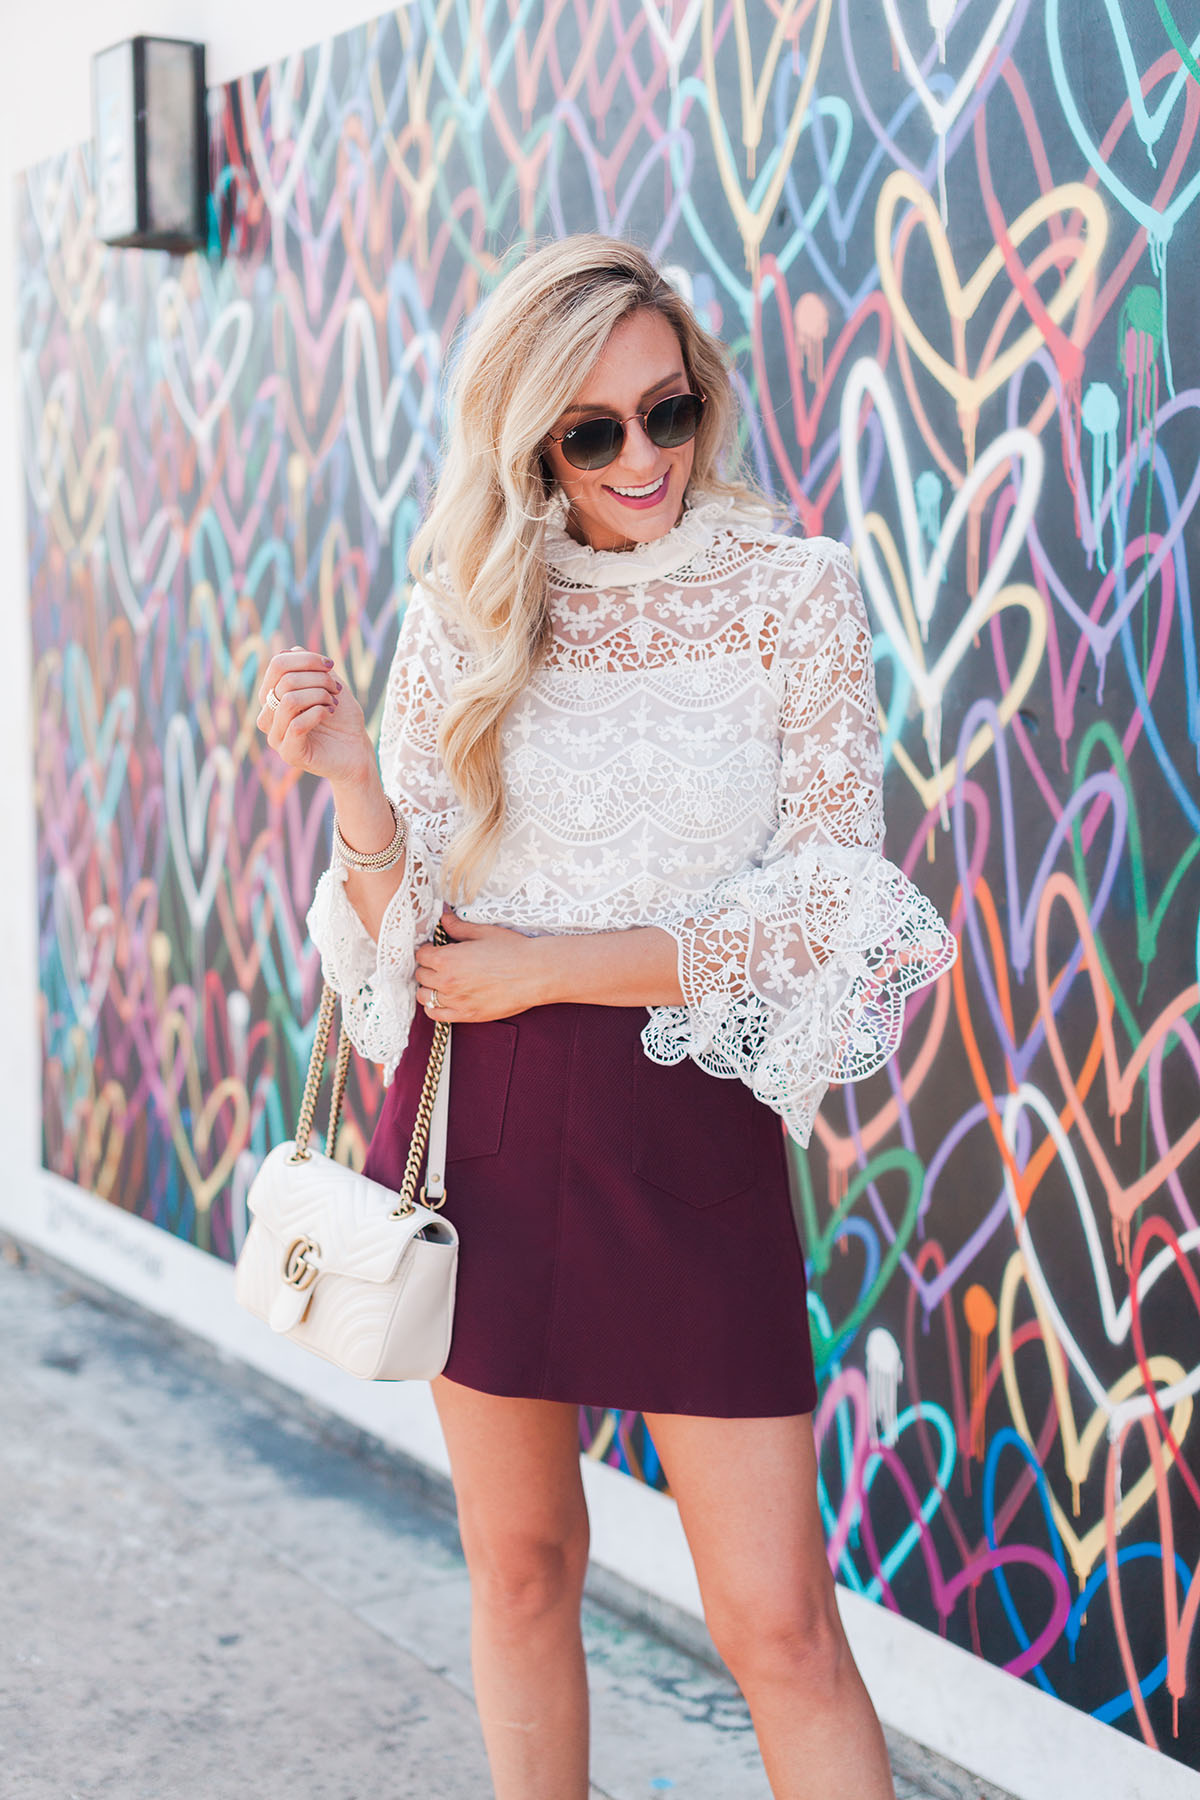 White Lace Top + Burgundy Mini Skirt | Fall Outfit Idea | Find This Look in the Shopbop Sale